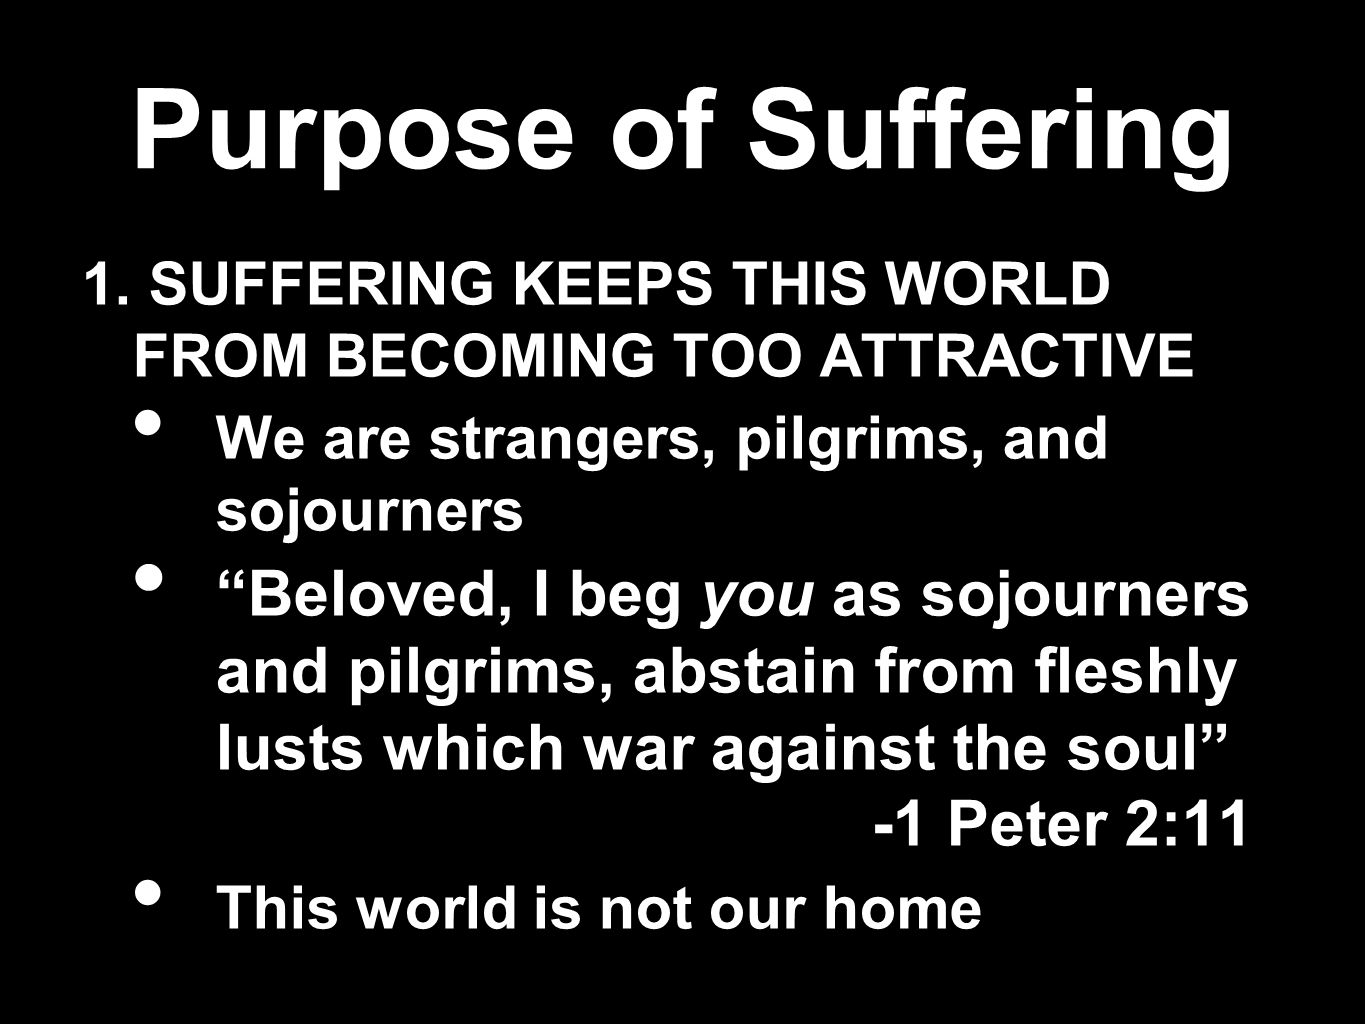 Purpose of Suffering 1. SUFFERING KEEPS THIS WORLD FROM BECOMING TOO ATTRACTIVE. We are strangers, pilgrims, and sojourners.